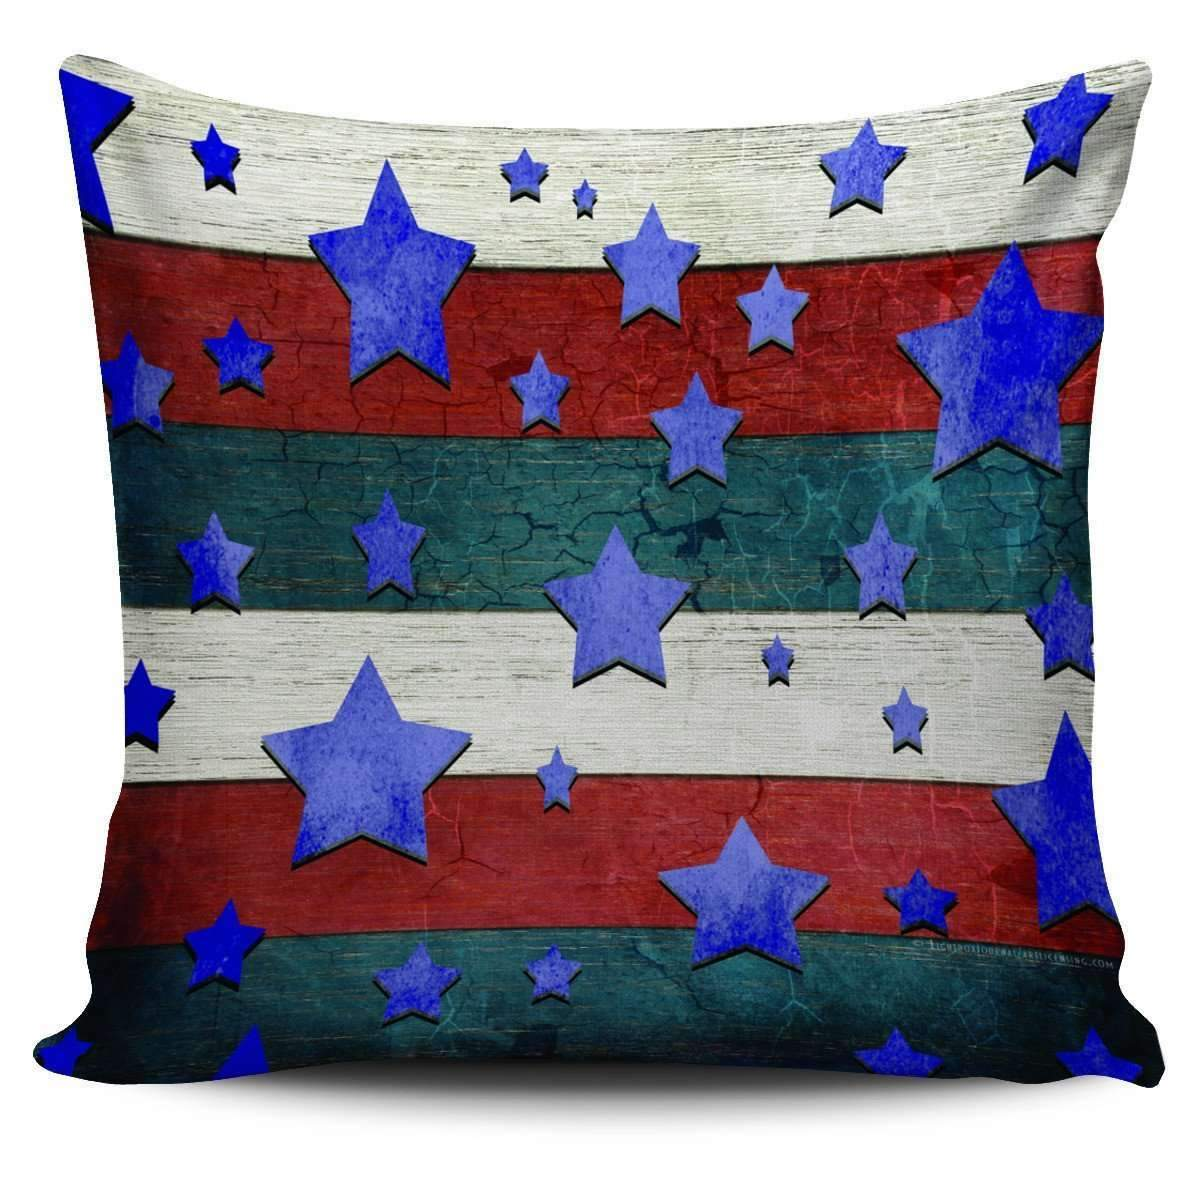 Stars & Stripes - Pillow Covers-Stars & Stripes - 1-PP.1398529-Shopeholic